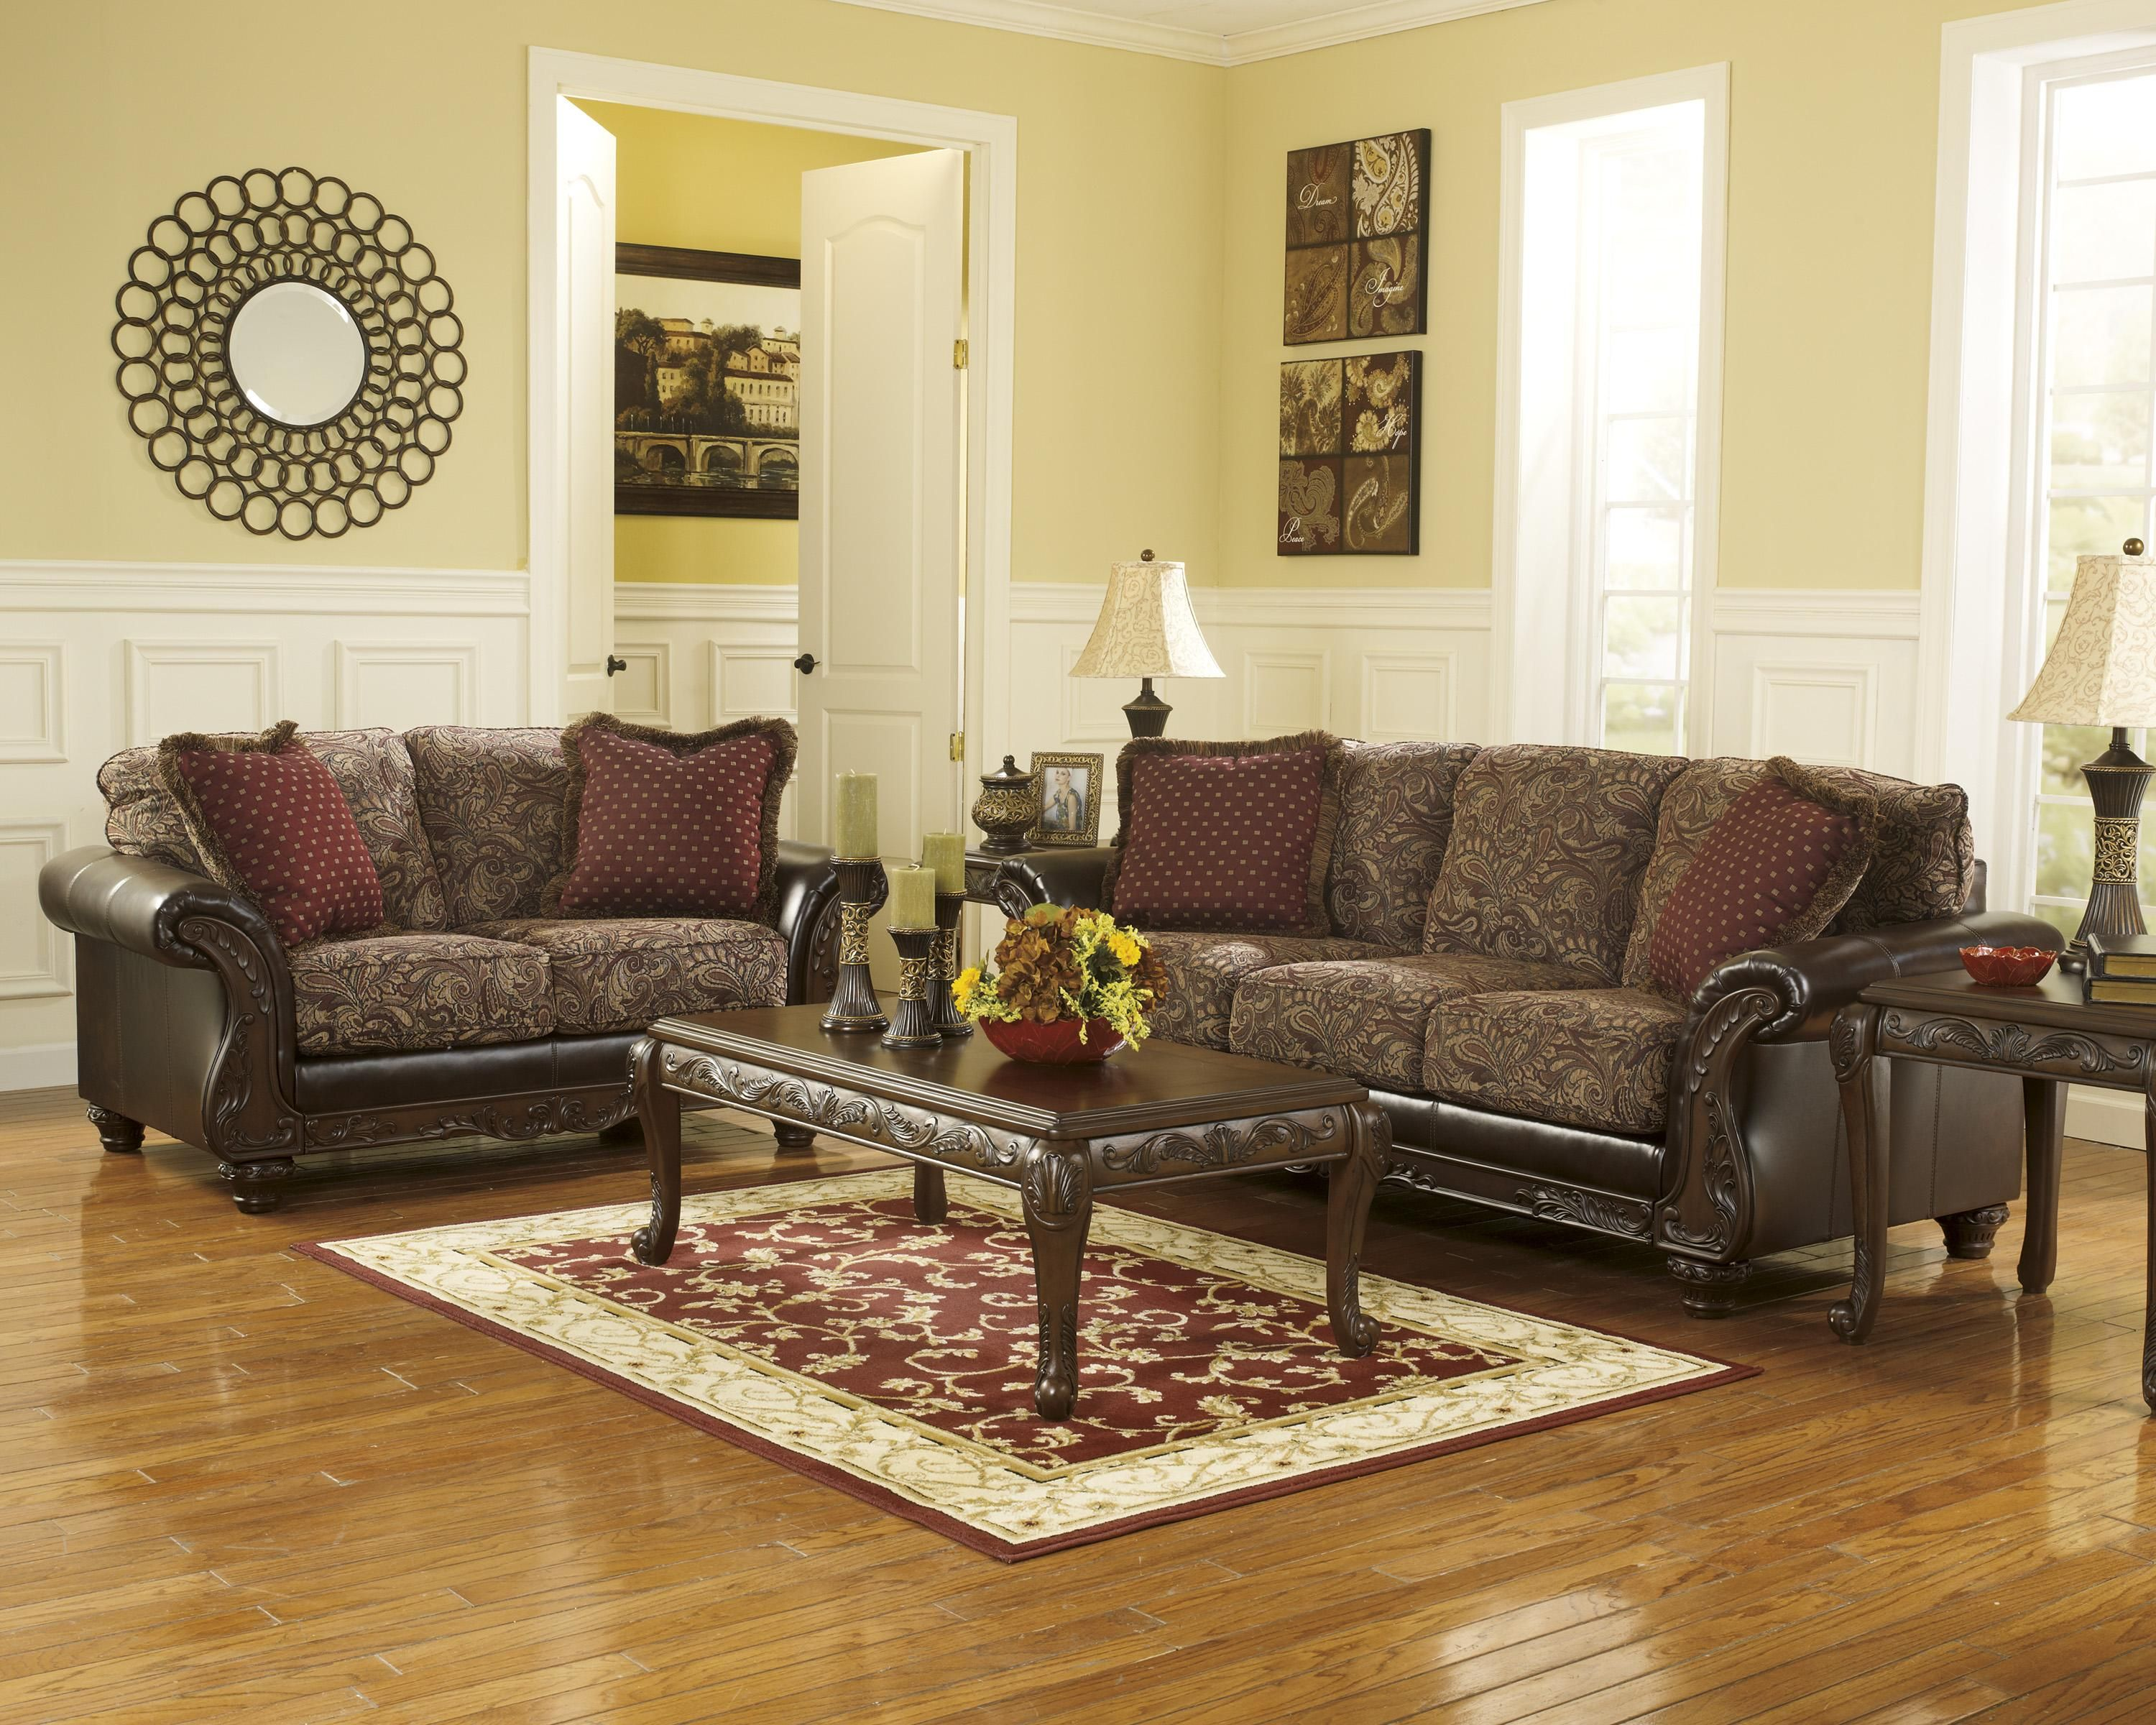 Shop For A Alessandria 5 Pc Living Room At Rooms To Go Find Sets That Will Look Great In Your Home And Complement The Rest Of Fur